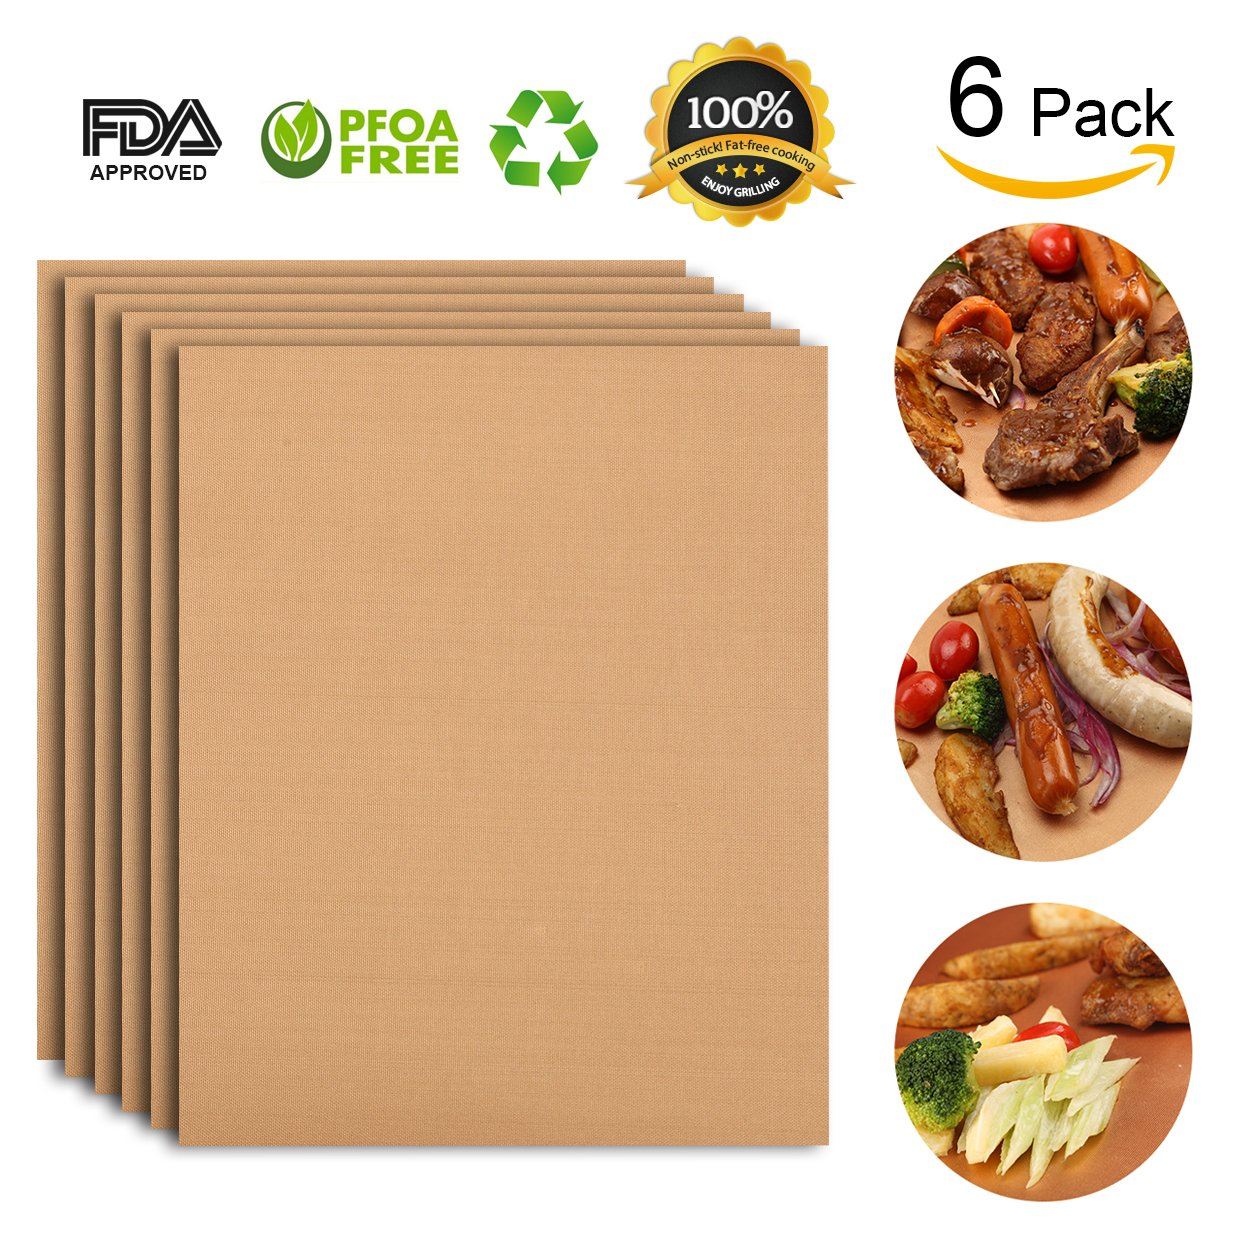 Copper bbq grill mat set of 6 Alimat Plus oven liner reusable